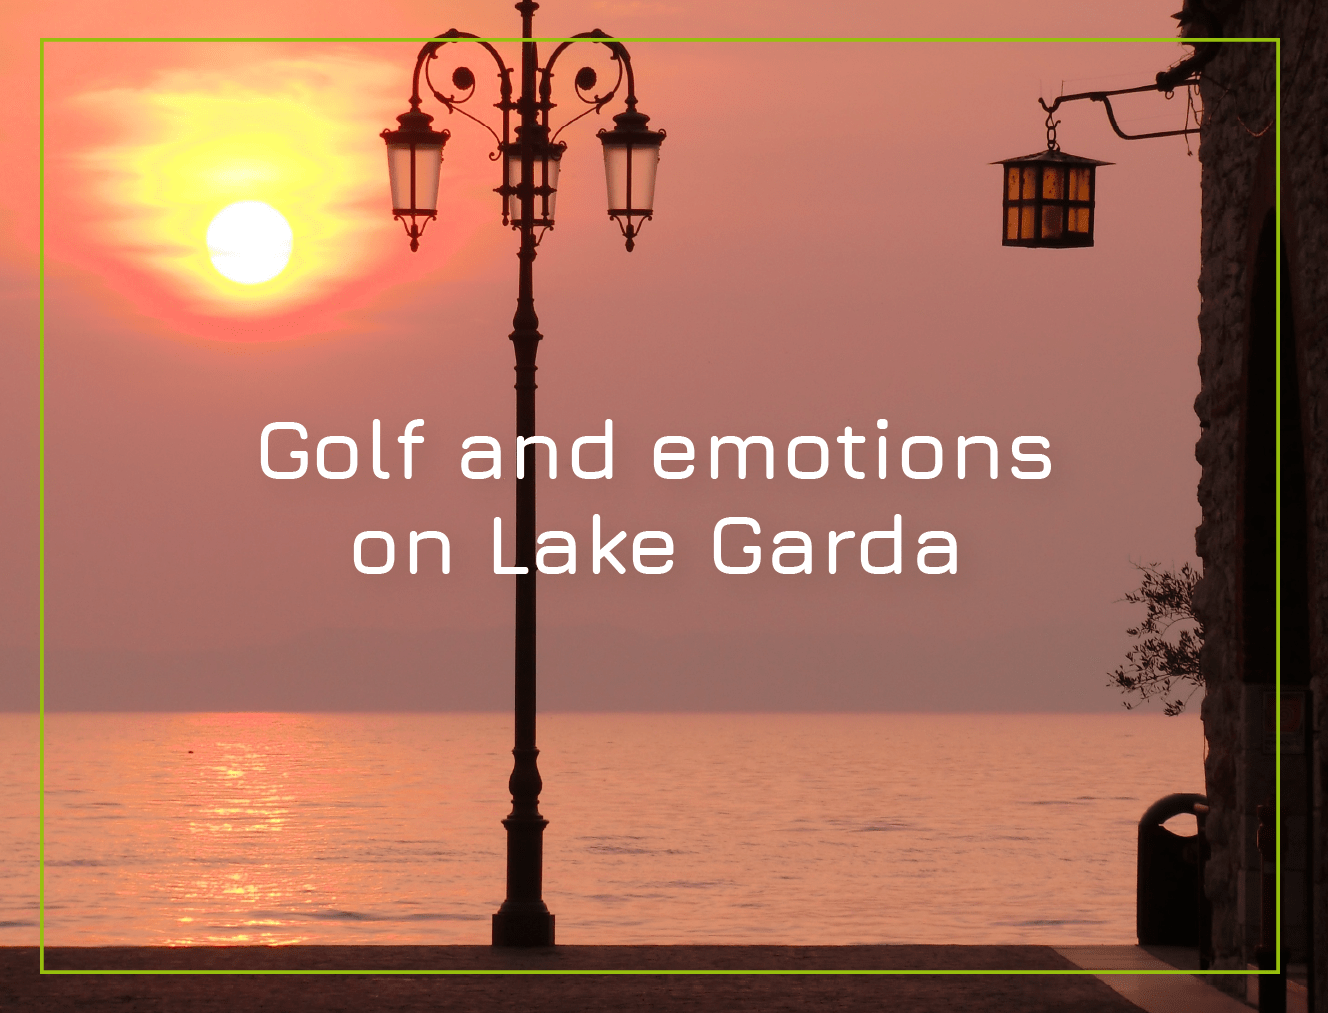 Golf and emotions on Lake Garda